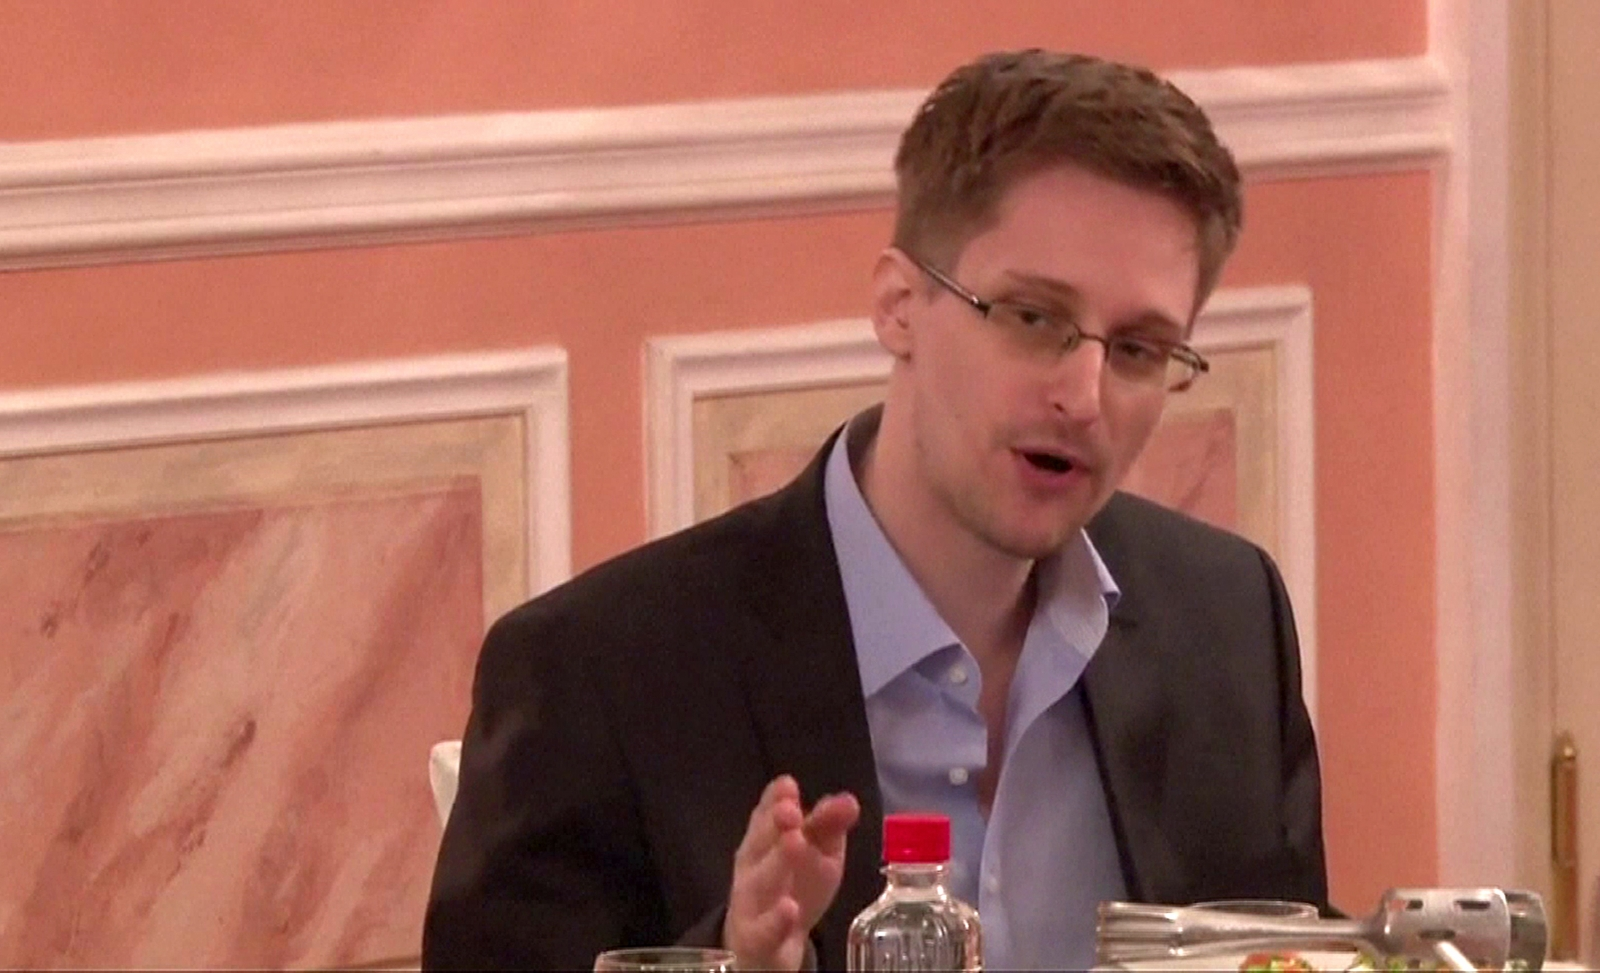 Edward Snowden back on Twitter, squashes death conspiracy theory with Mark Twain quote